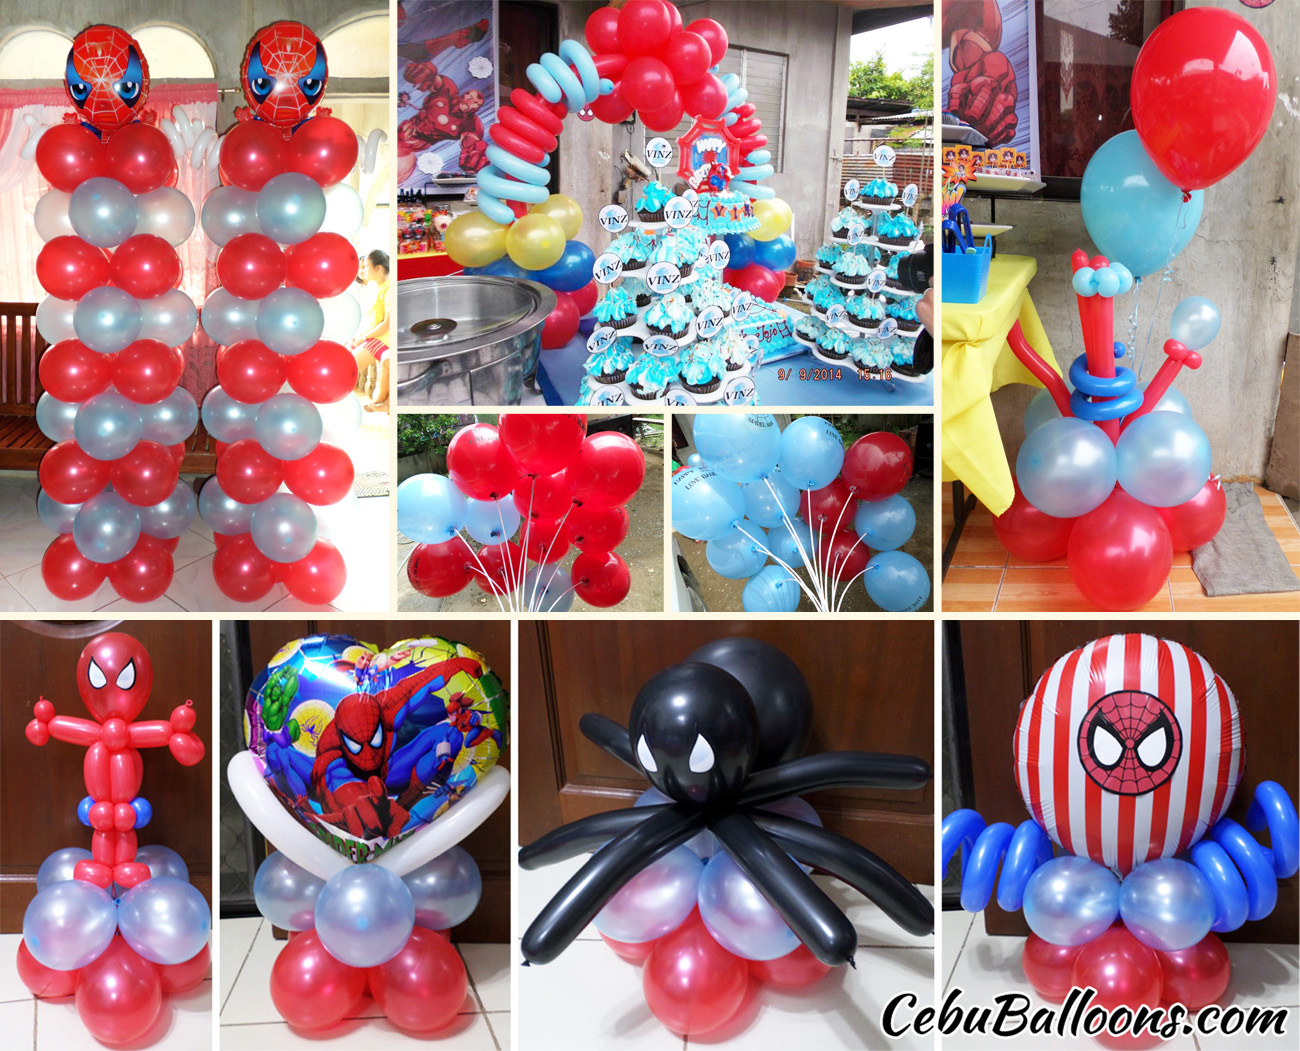 Spiderman Balloon Decoration Package at Bajac Liloan & Spiderman | Cebu Balloons and Party Supplies